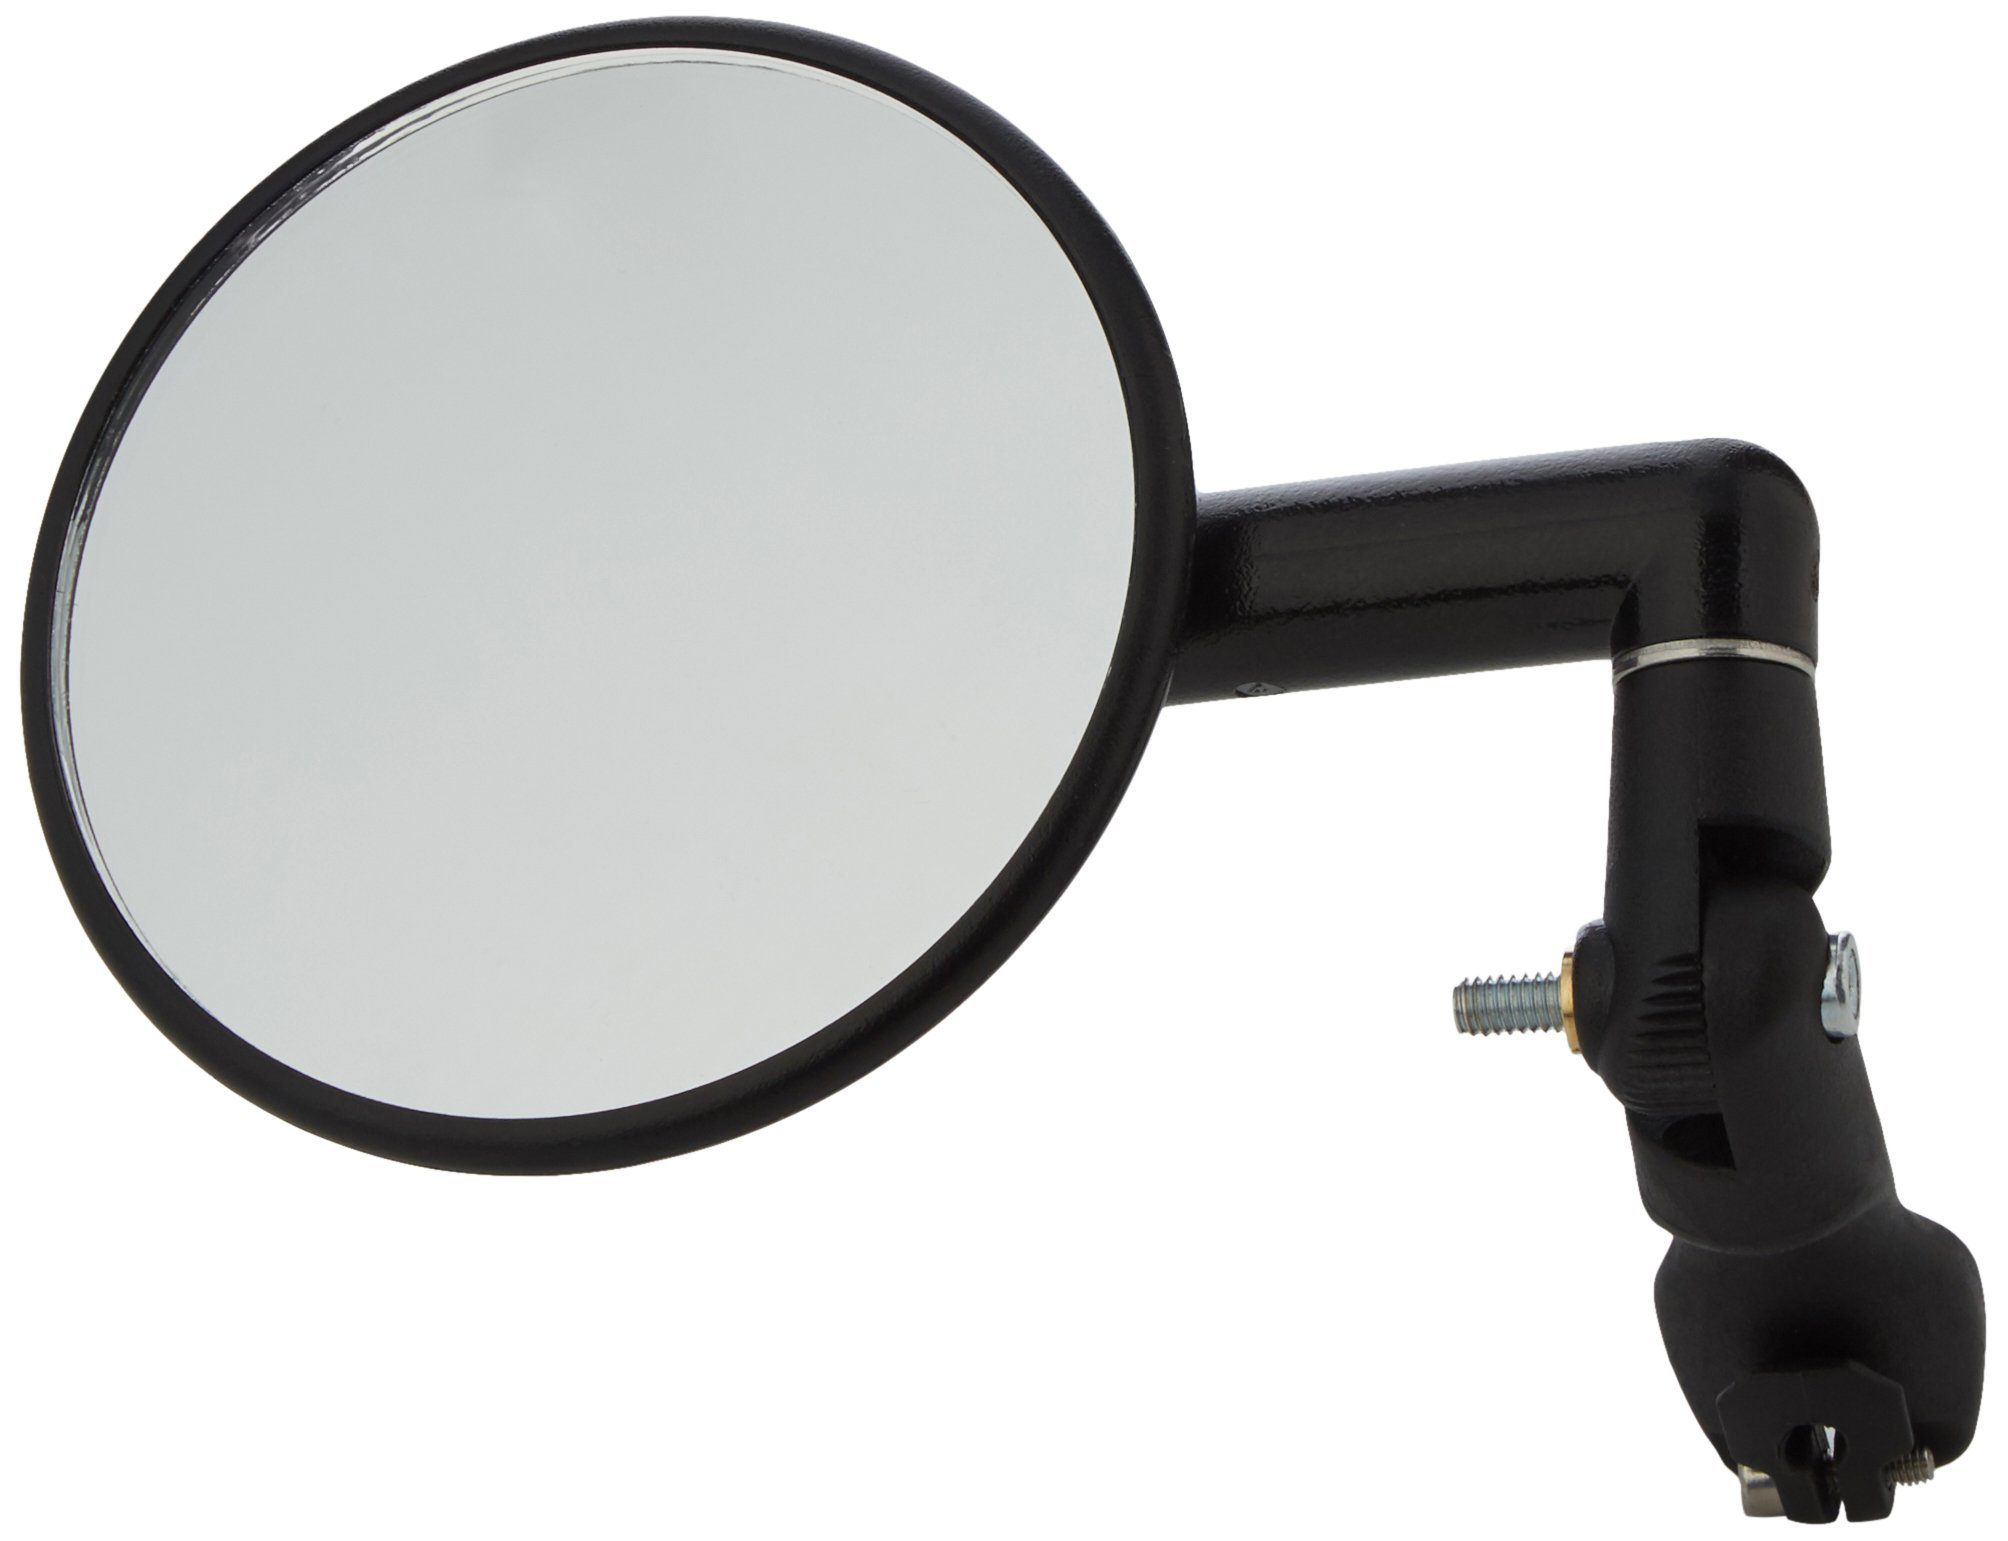 Mirrycle Road STI Bicycle Mirror - Only Compatible w/ 2010 or older by Mirrycle (Image #1)